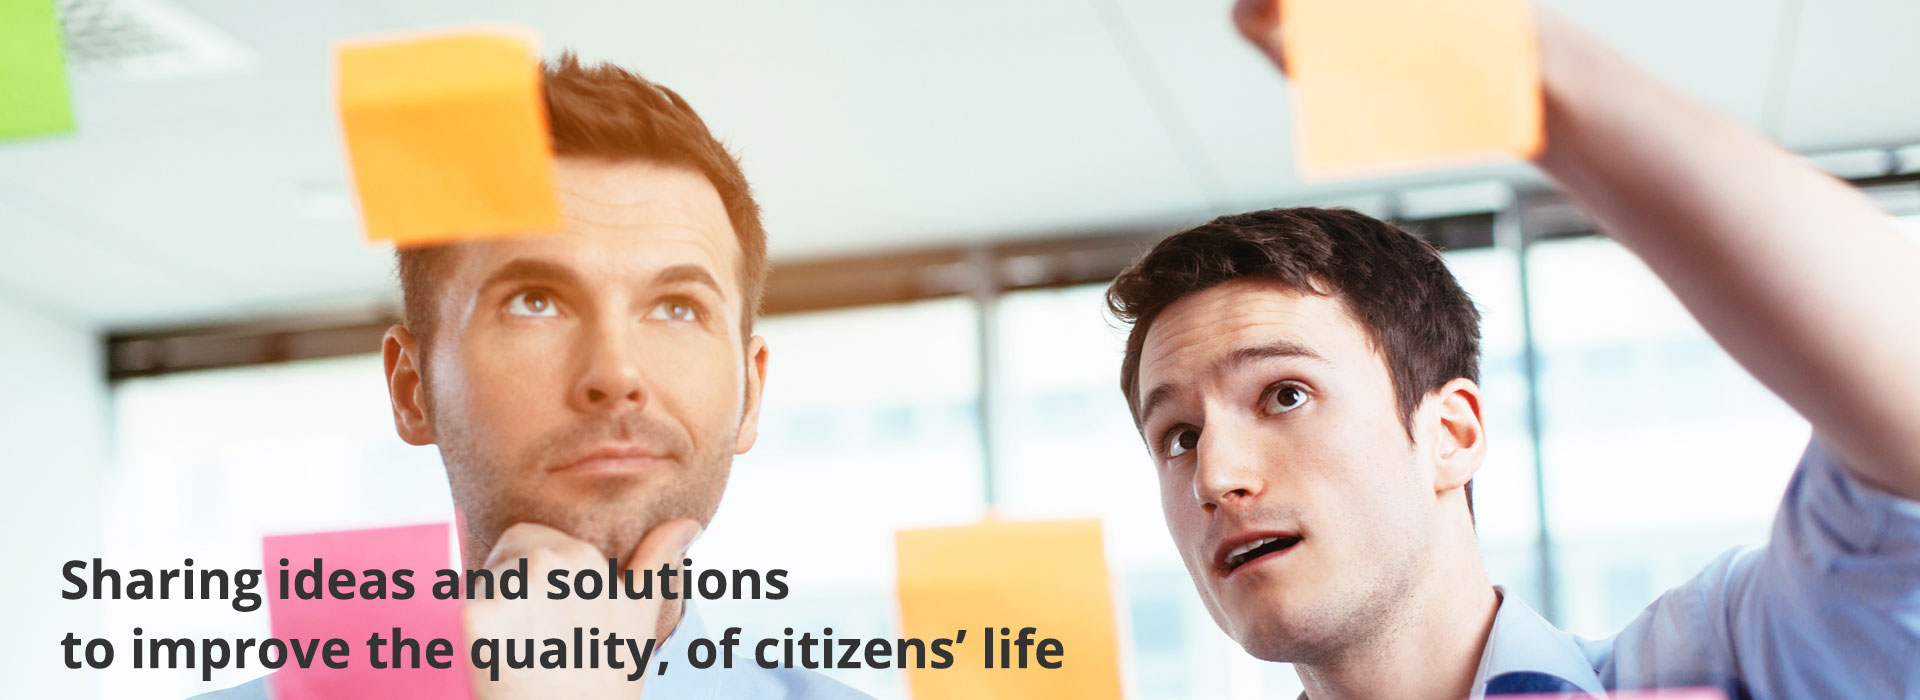 sharing ideas and solutions to improve the quality, of citizens' life